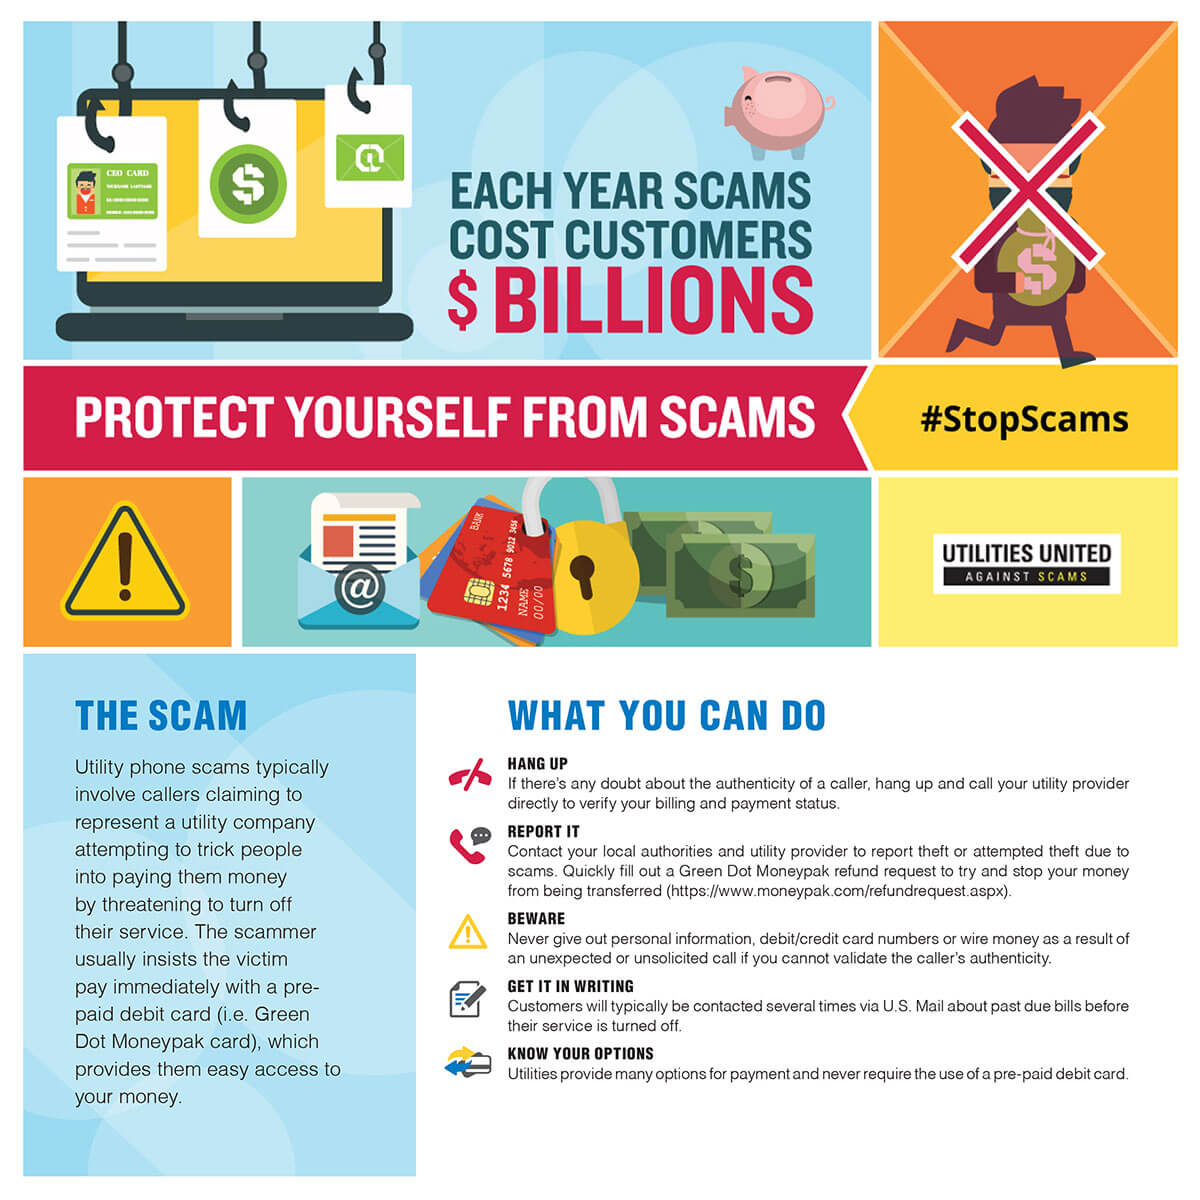 Watch out for utility scams! (Do not pay electric/heating bills with